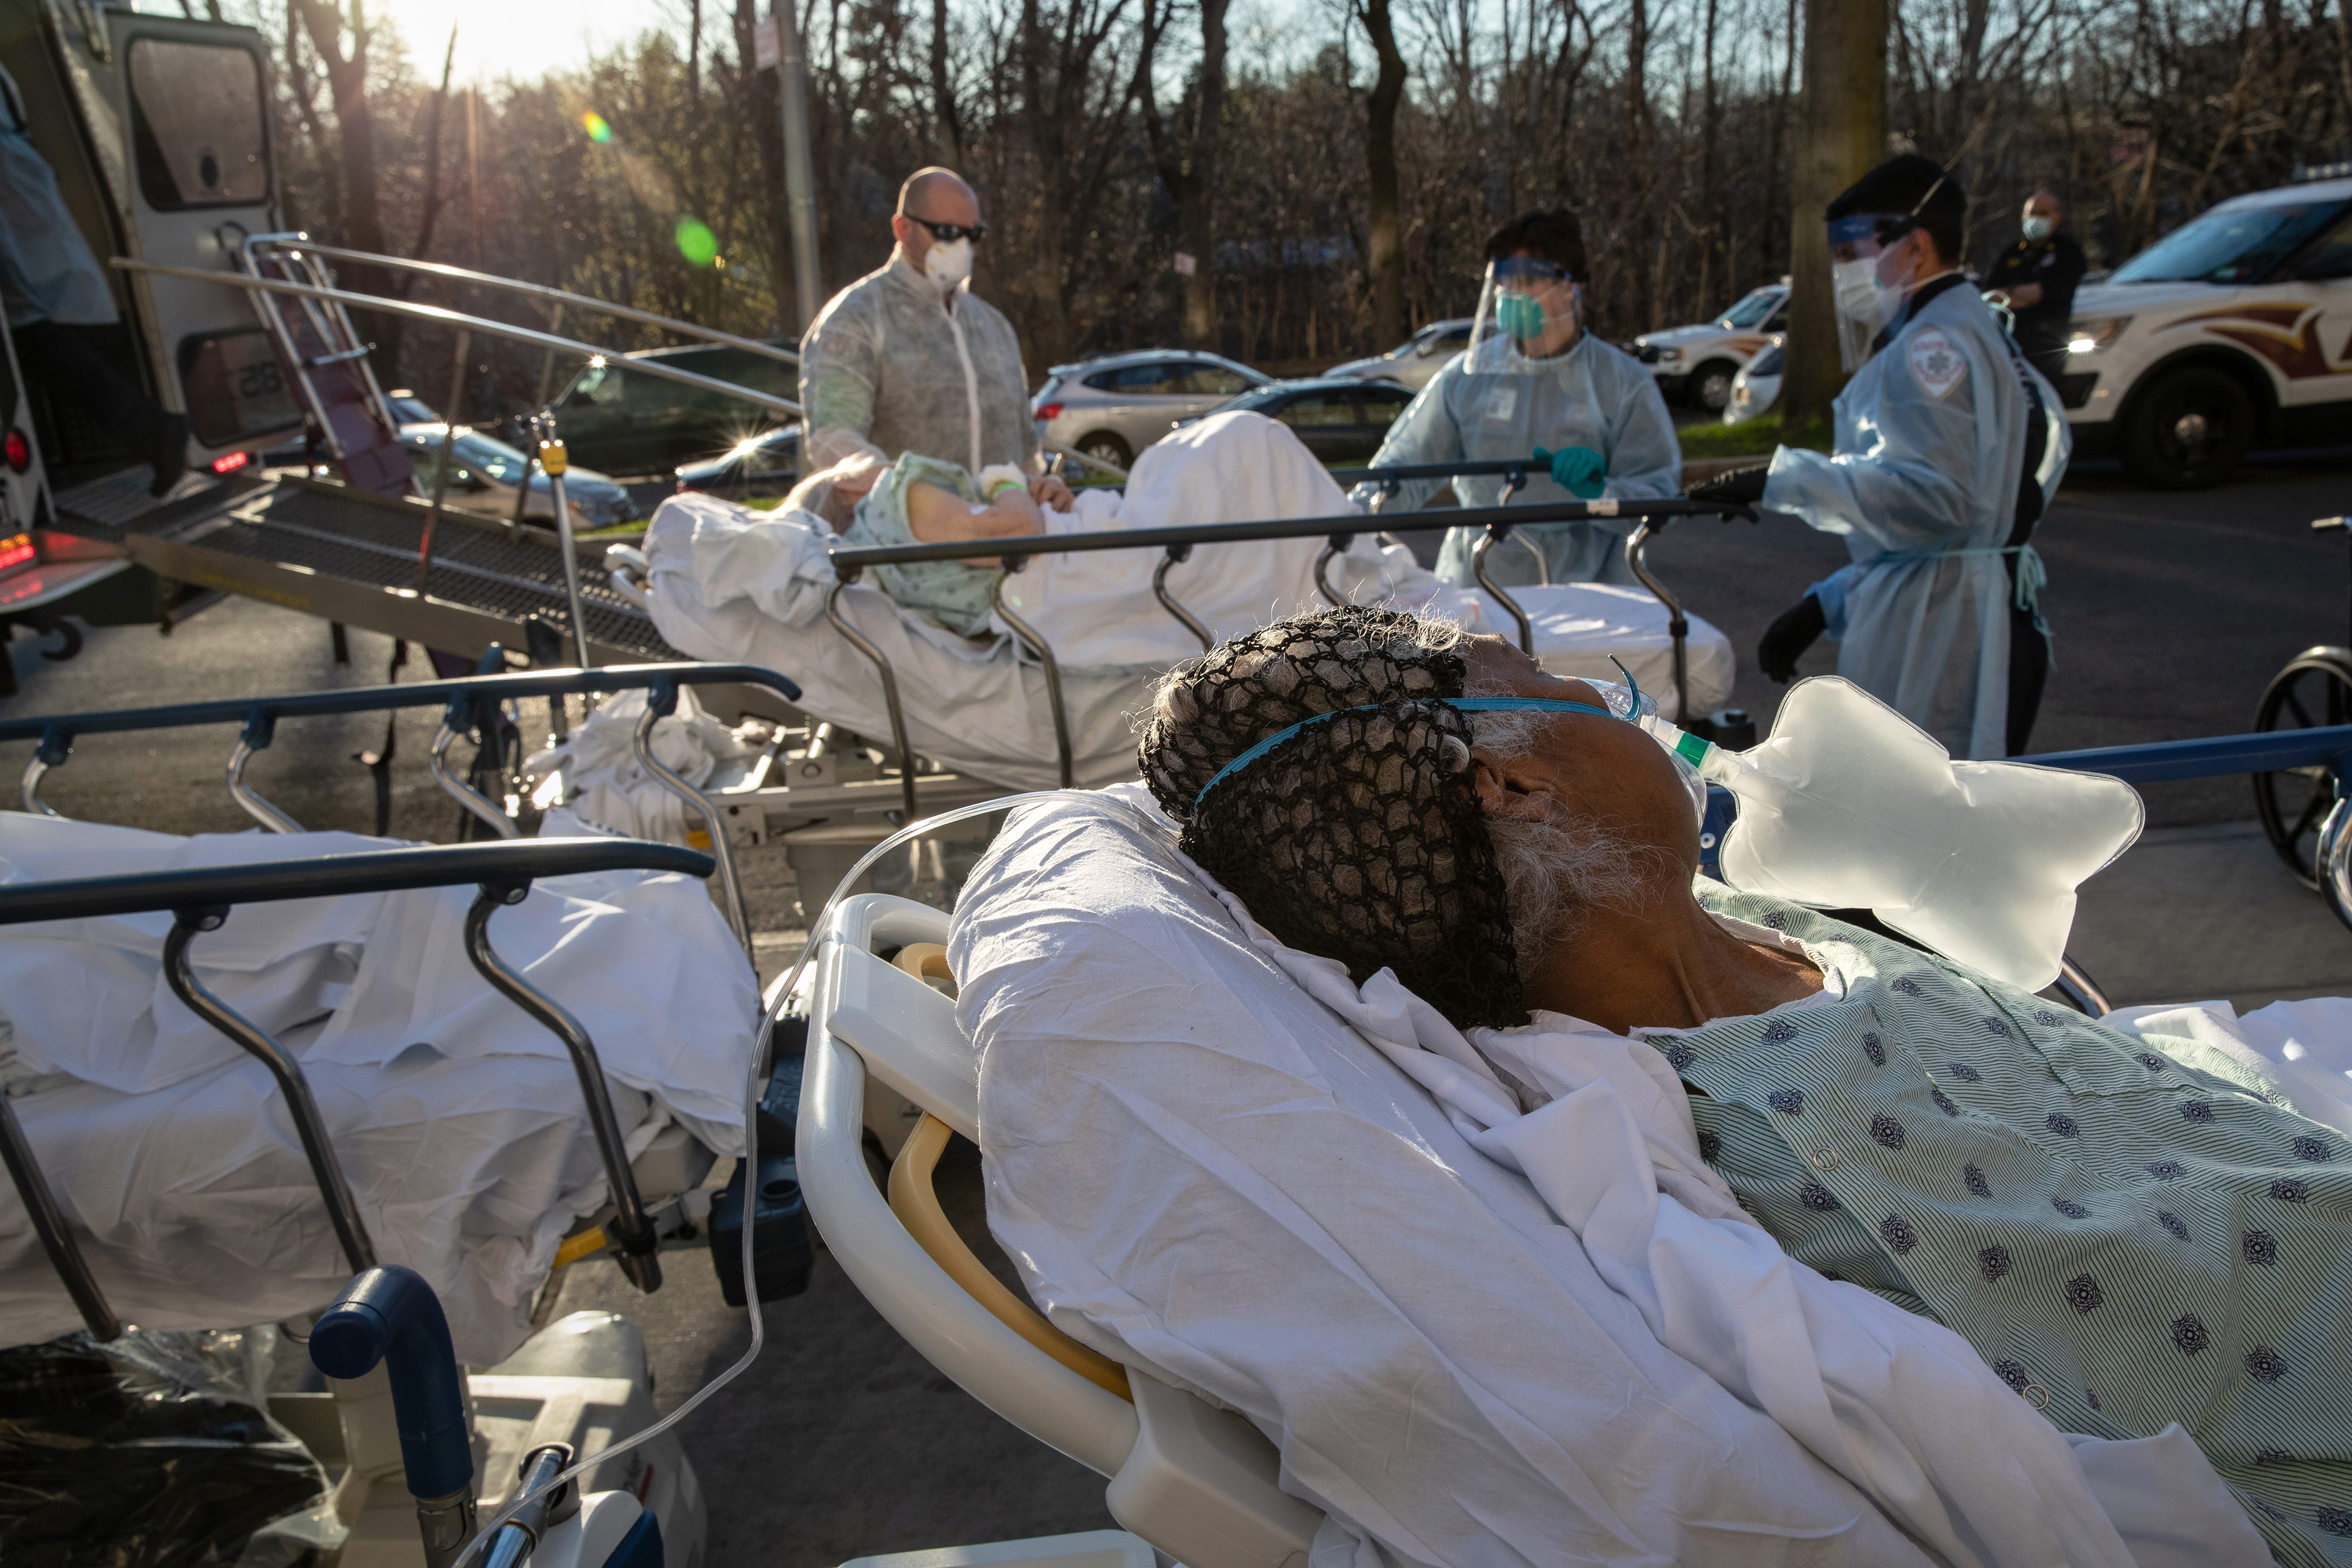 COVID-19 patients arrive at the Wakefield Campus of the Montefiore Medical Center on April 6 in the Bronx borough of New York City. The patients were being transferred from the Einstein Campus of Weilerl Hospital, also a Bronx Montefiore hospital.